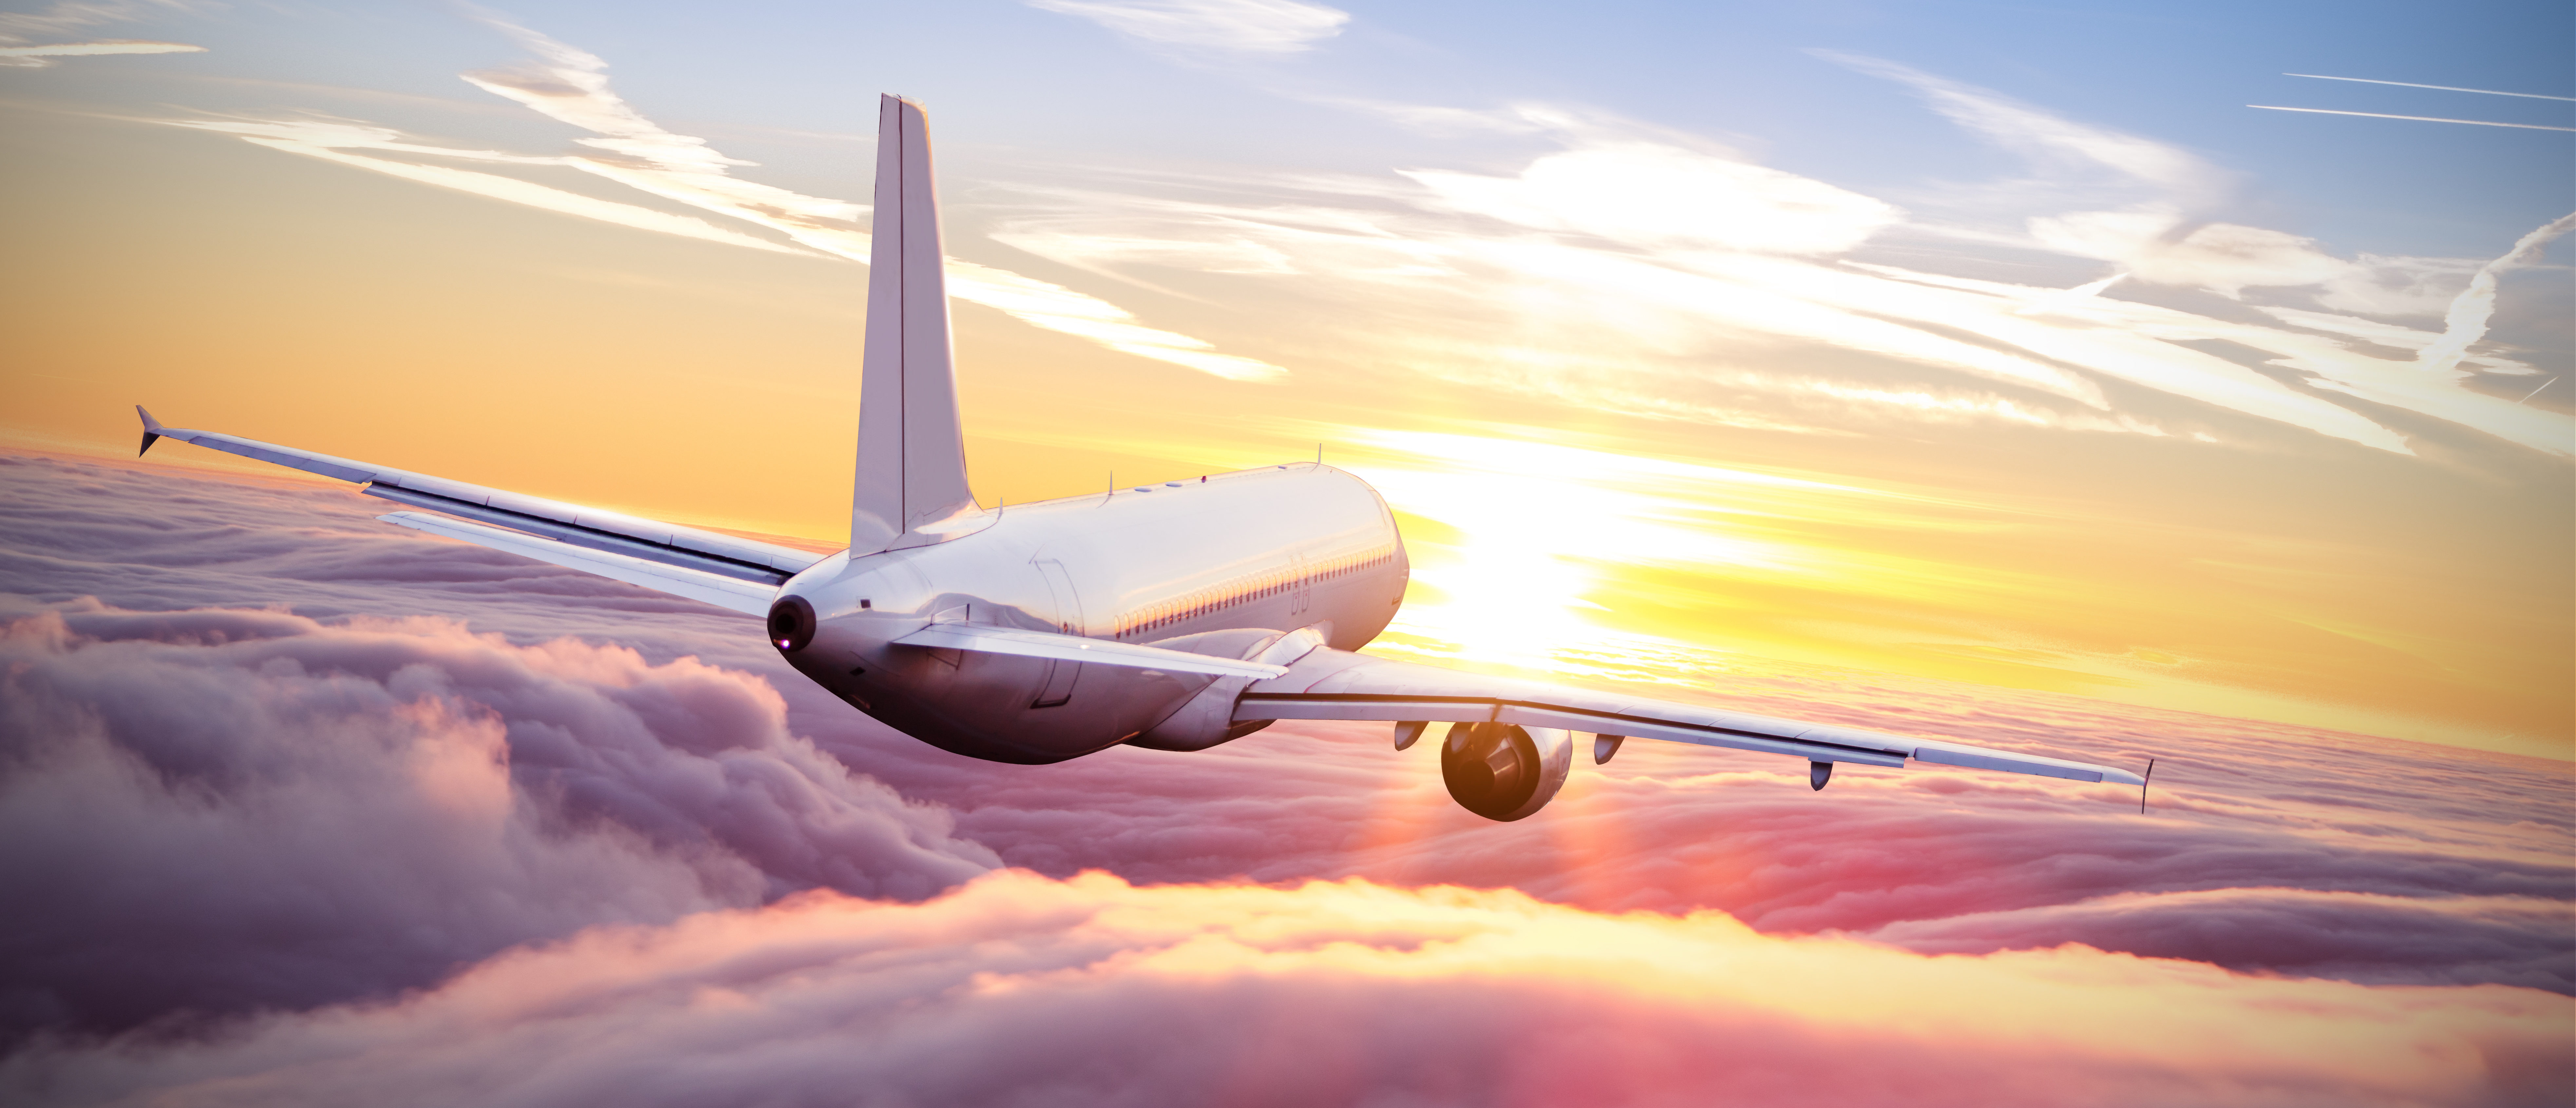 Airplane Into The Sunset Shutterstock